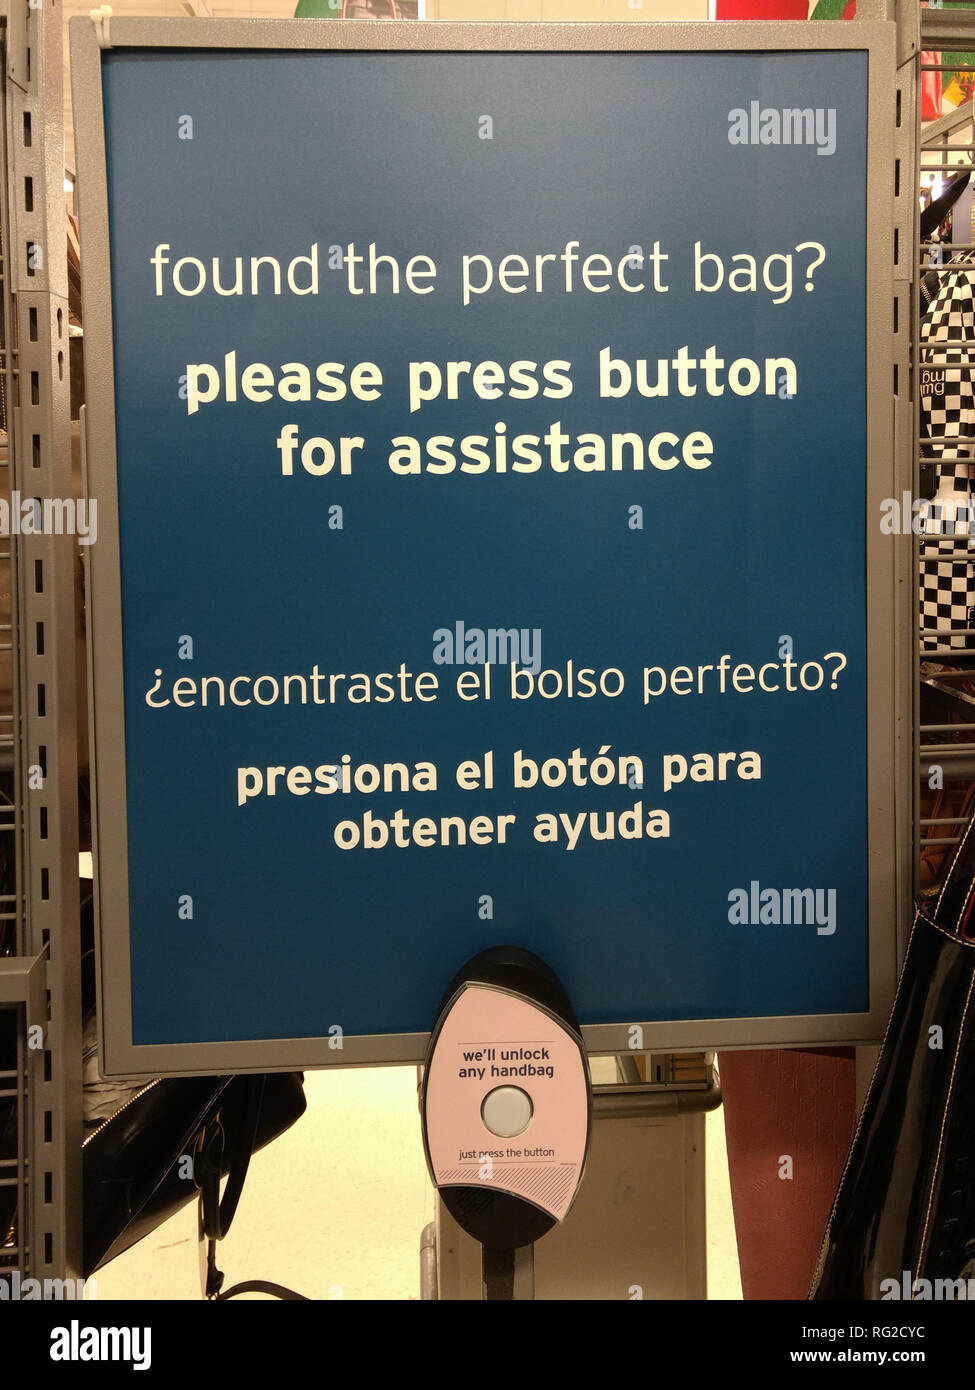 Protection against theft of handbags in store. Press button for assistance. - Stock Image